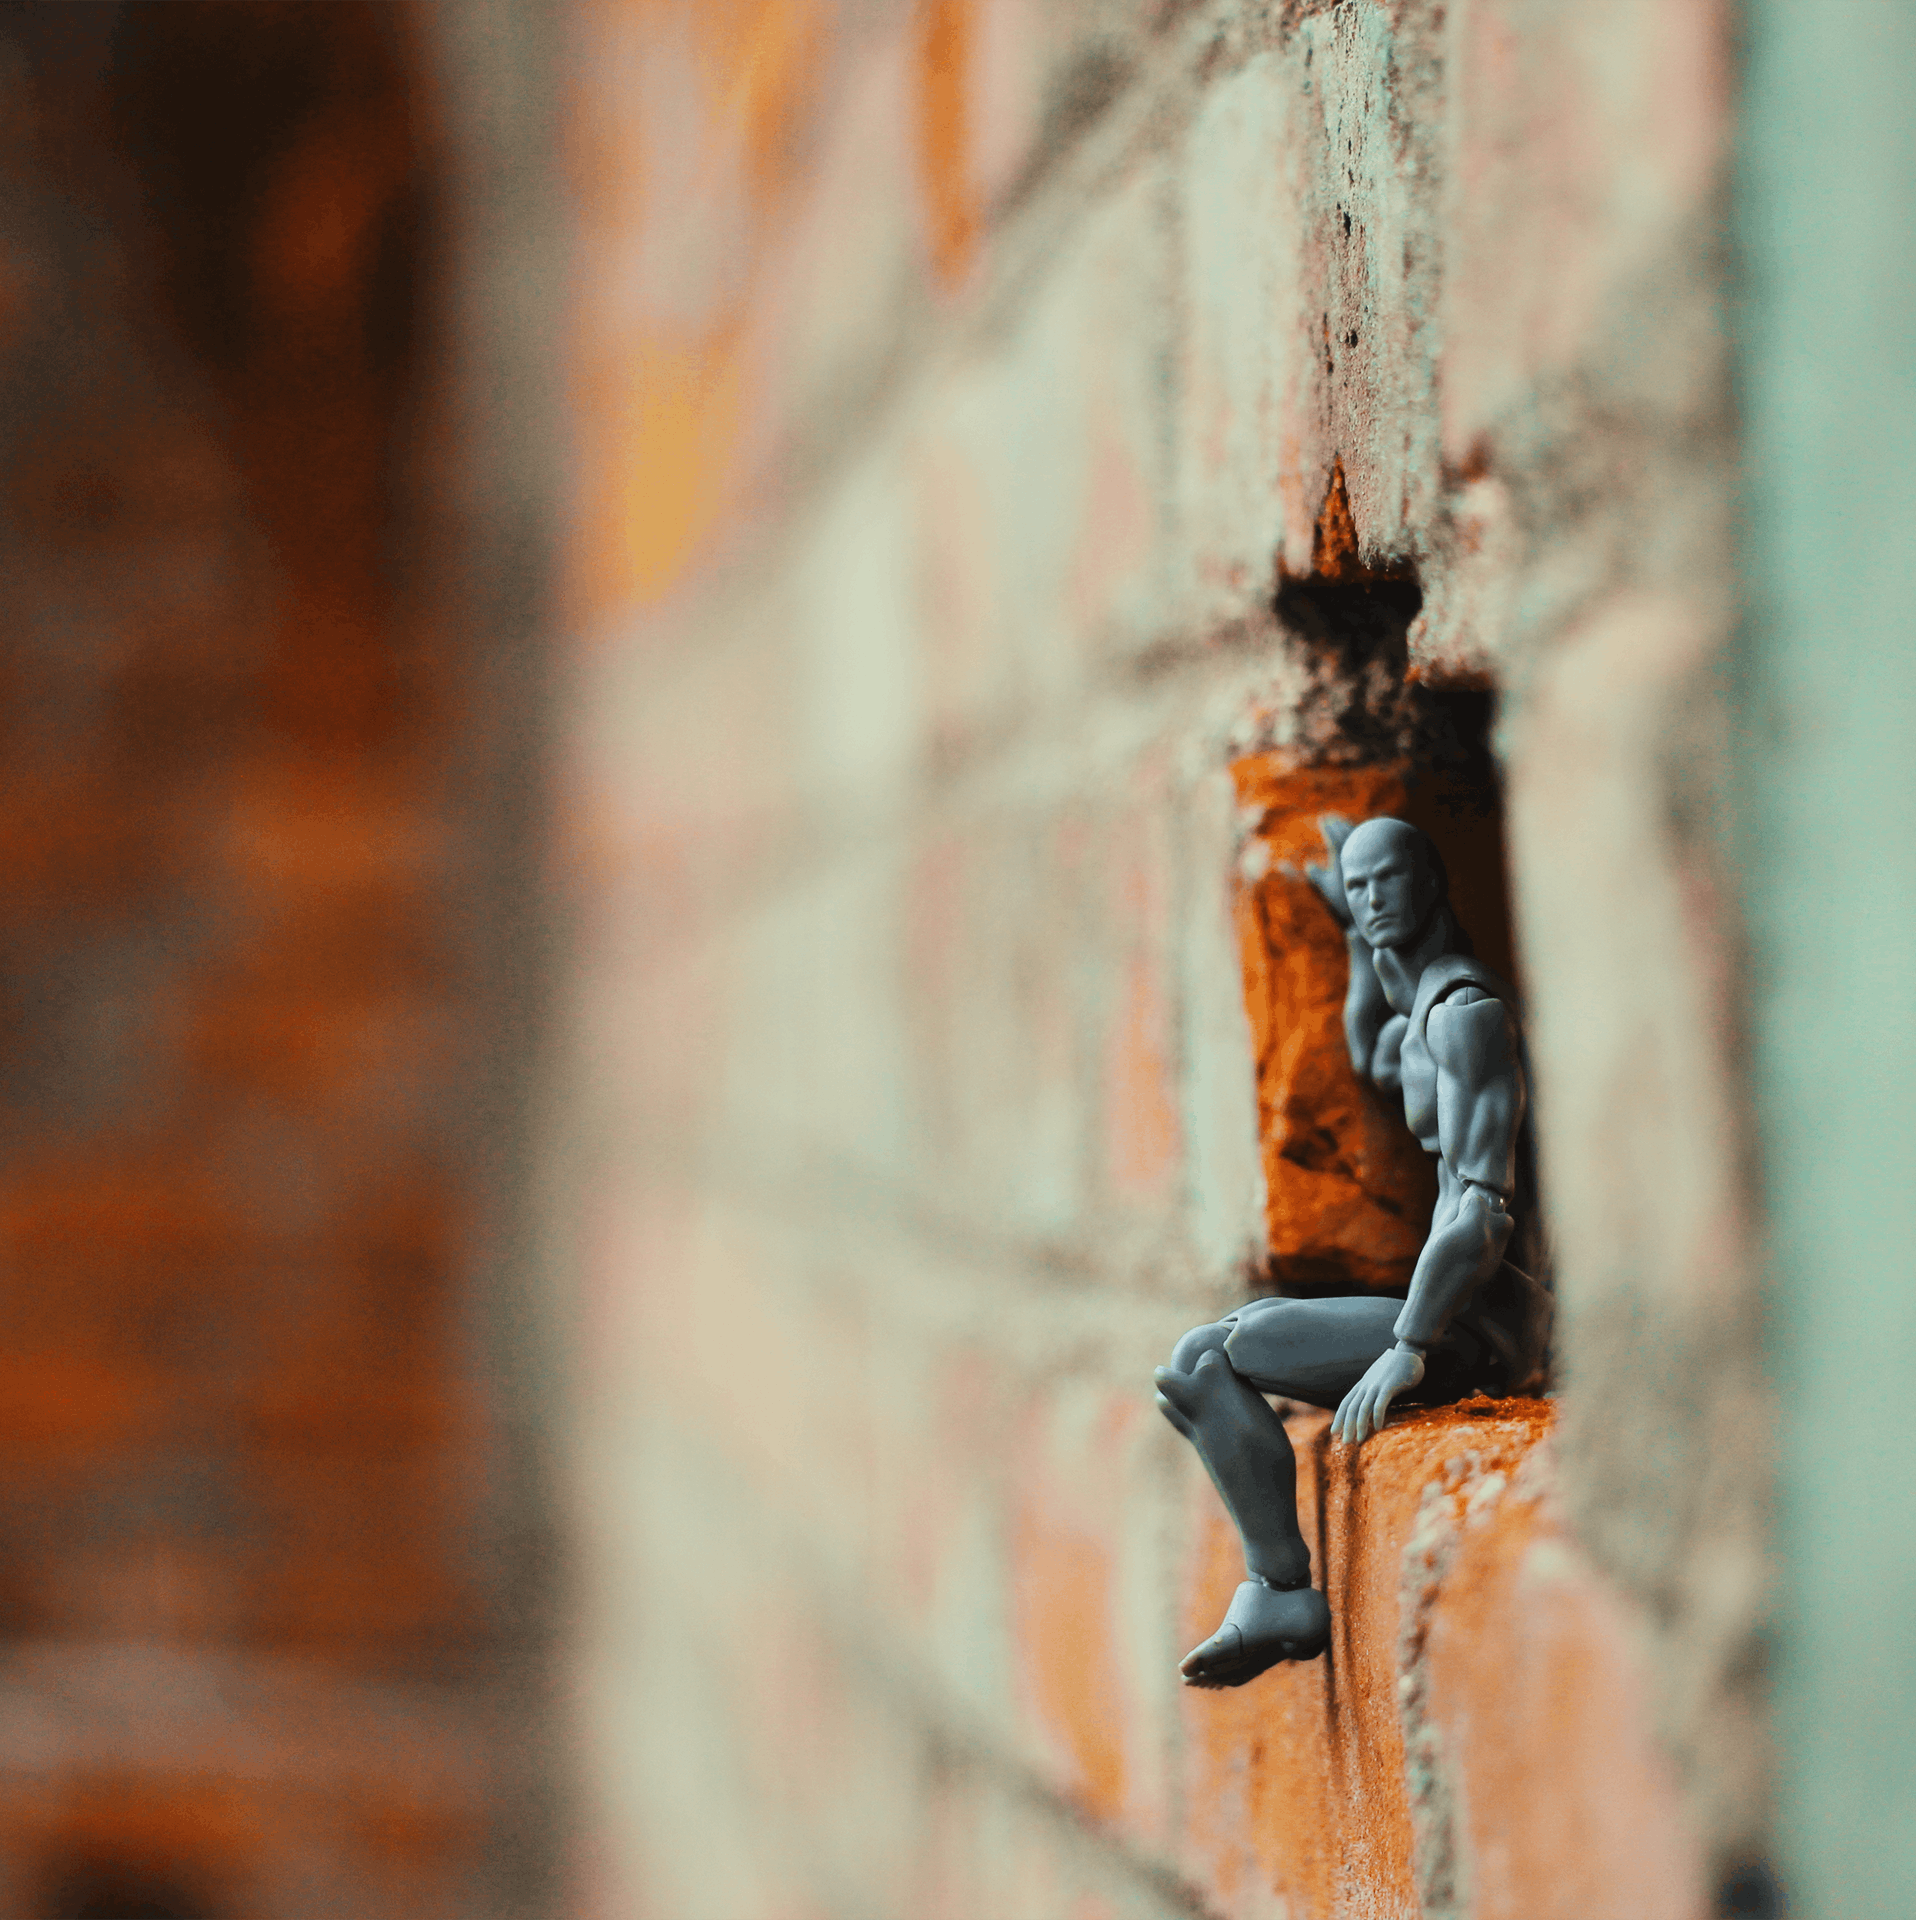 Action Figure on a Hole of Brick Wall